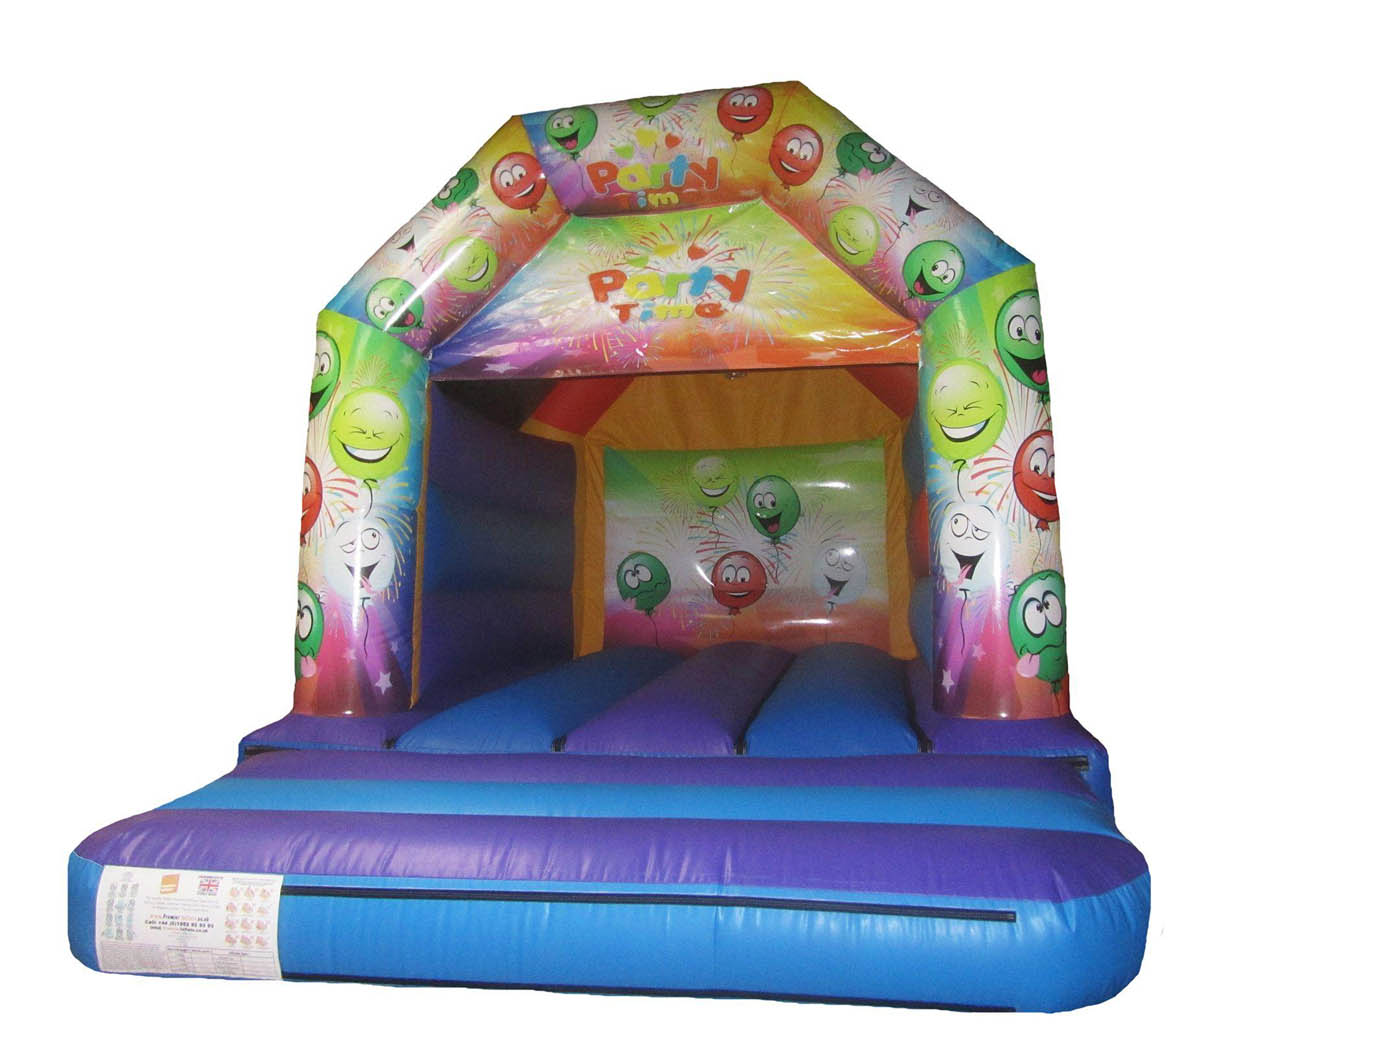 Children's Unisex Bouncy Castle